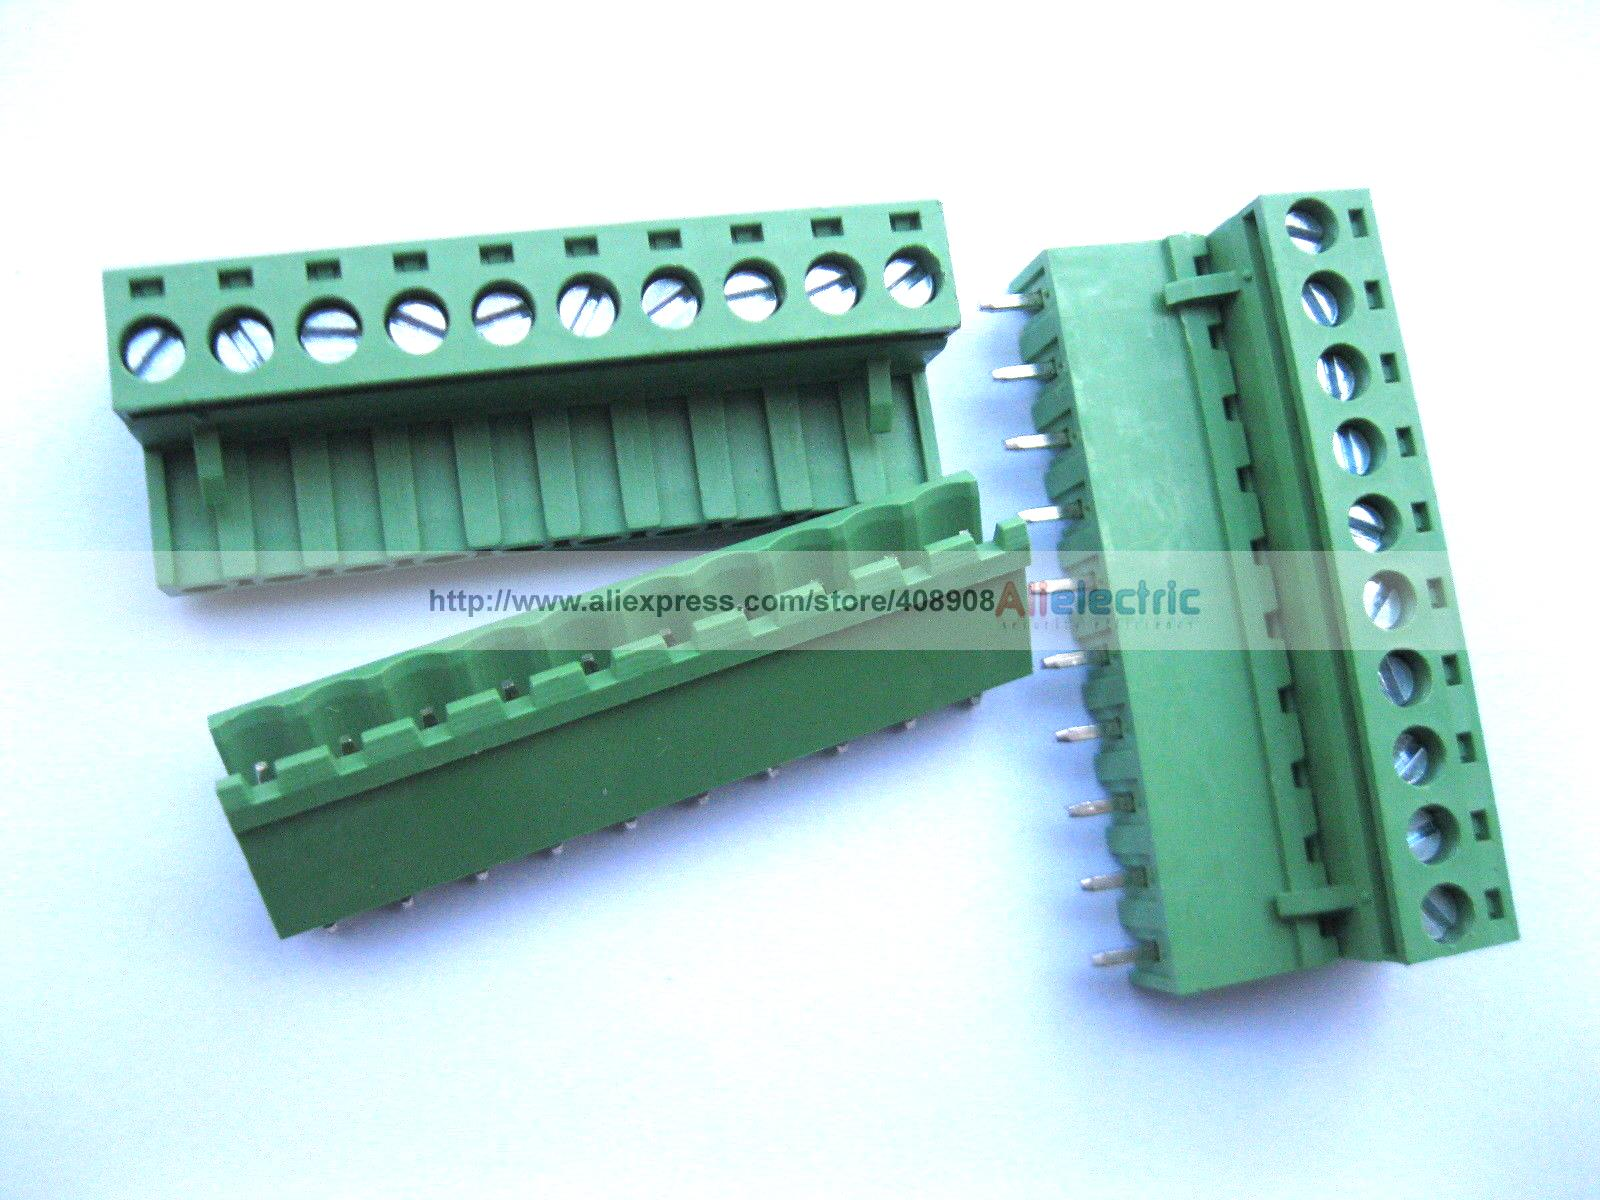 50 Pcs 5.08mm Straight 10 Pin Screw Terminal Block Connector Pluggable Green [vk] 553602 1 50 pin champ latch plug screw connectors